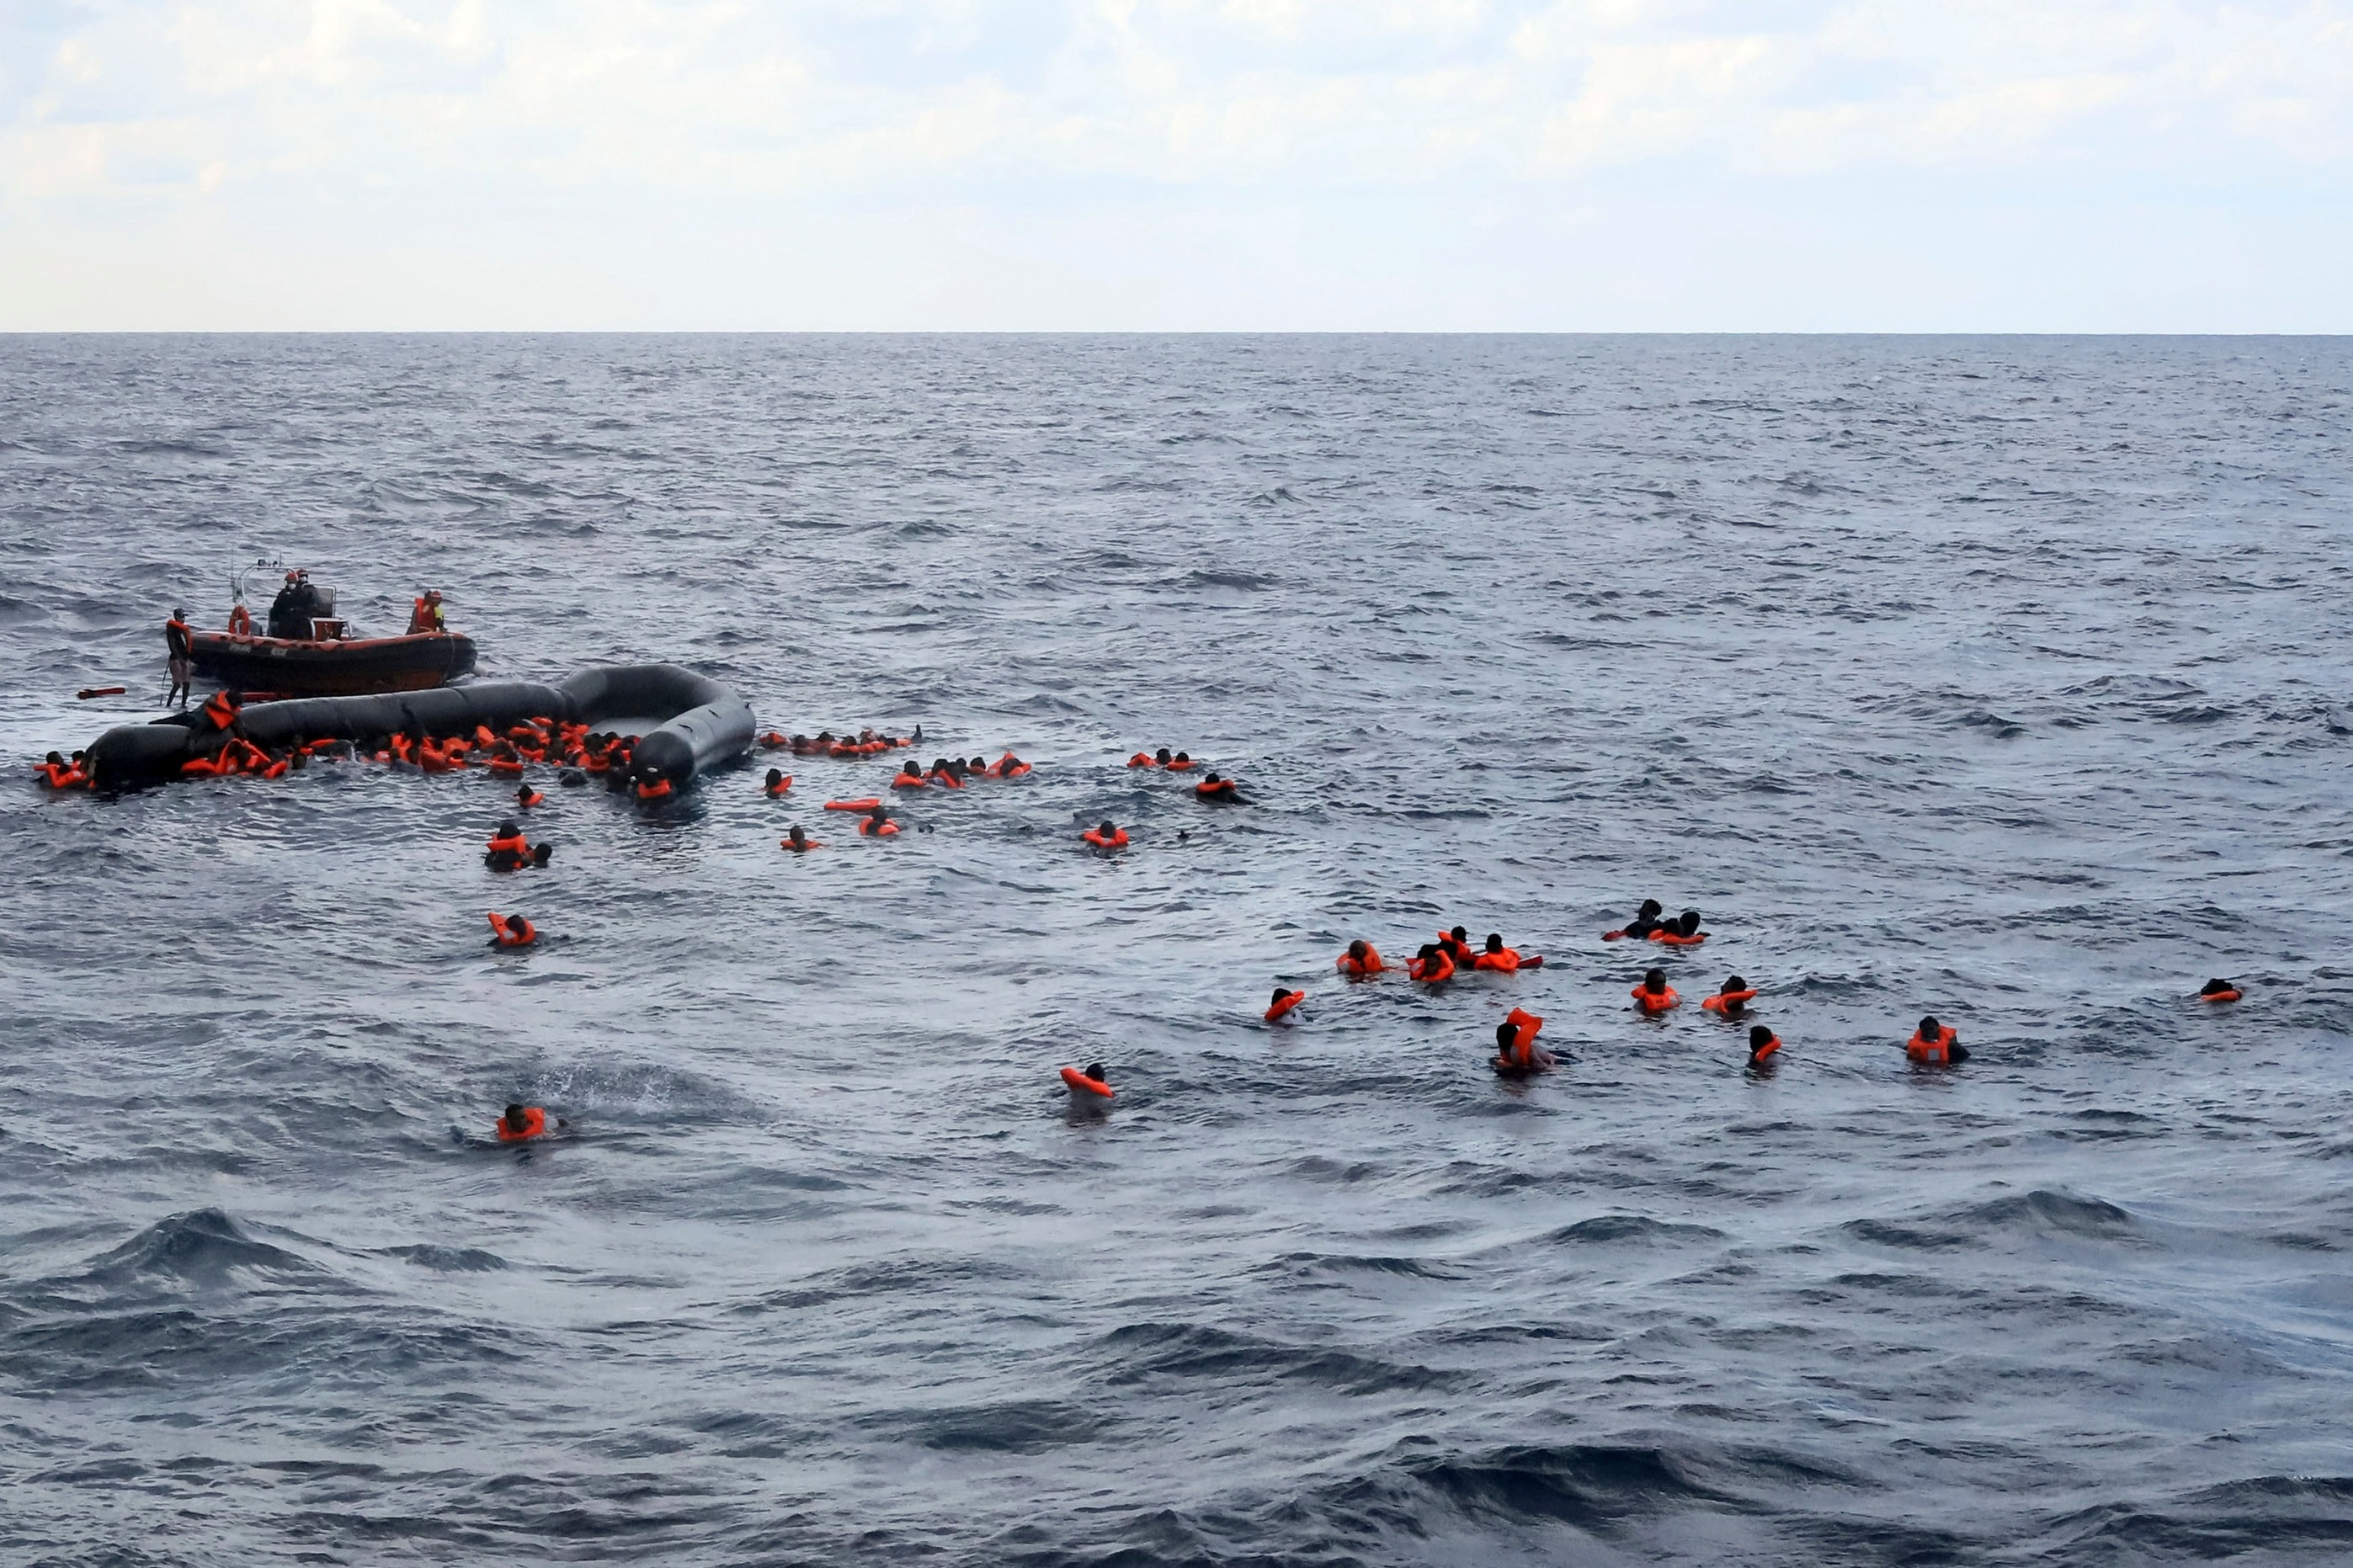 At least 74 migrants drown in Mediterranean off Libyan coast, United Nations says